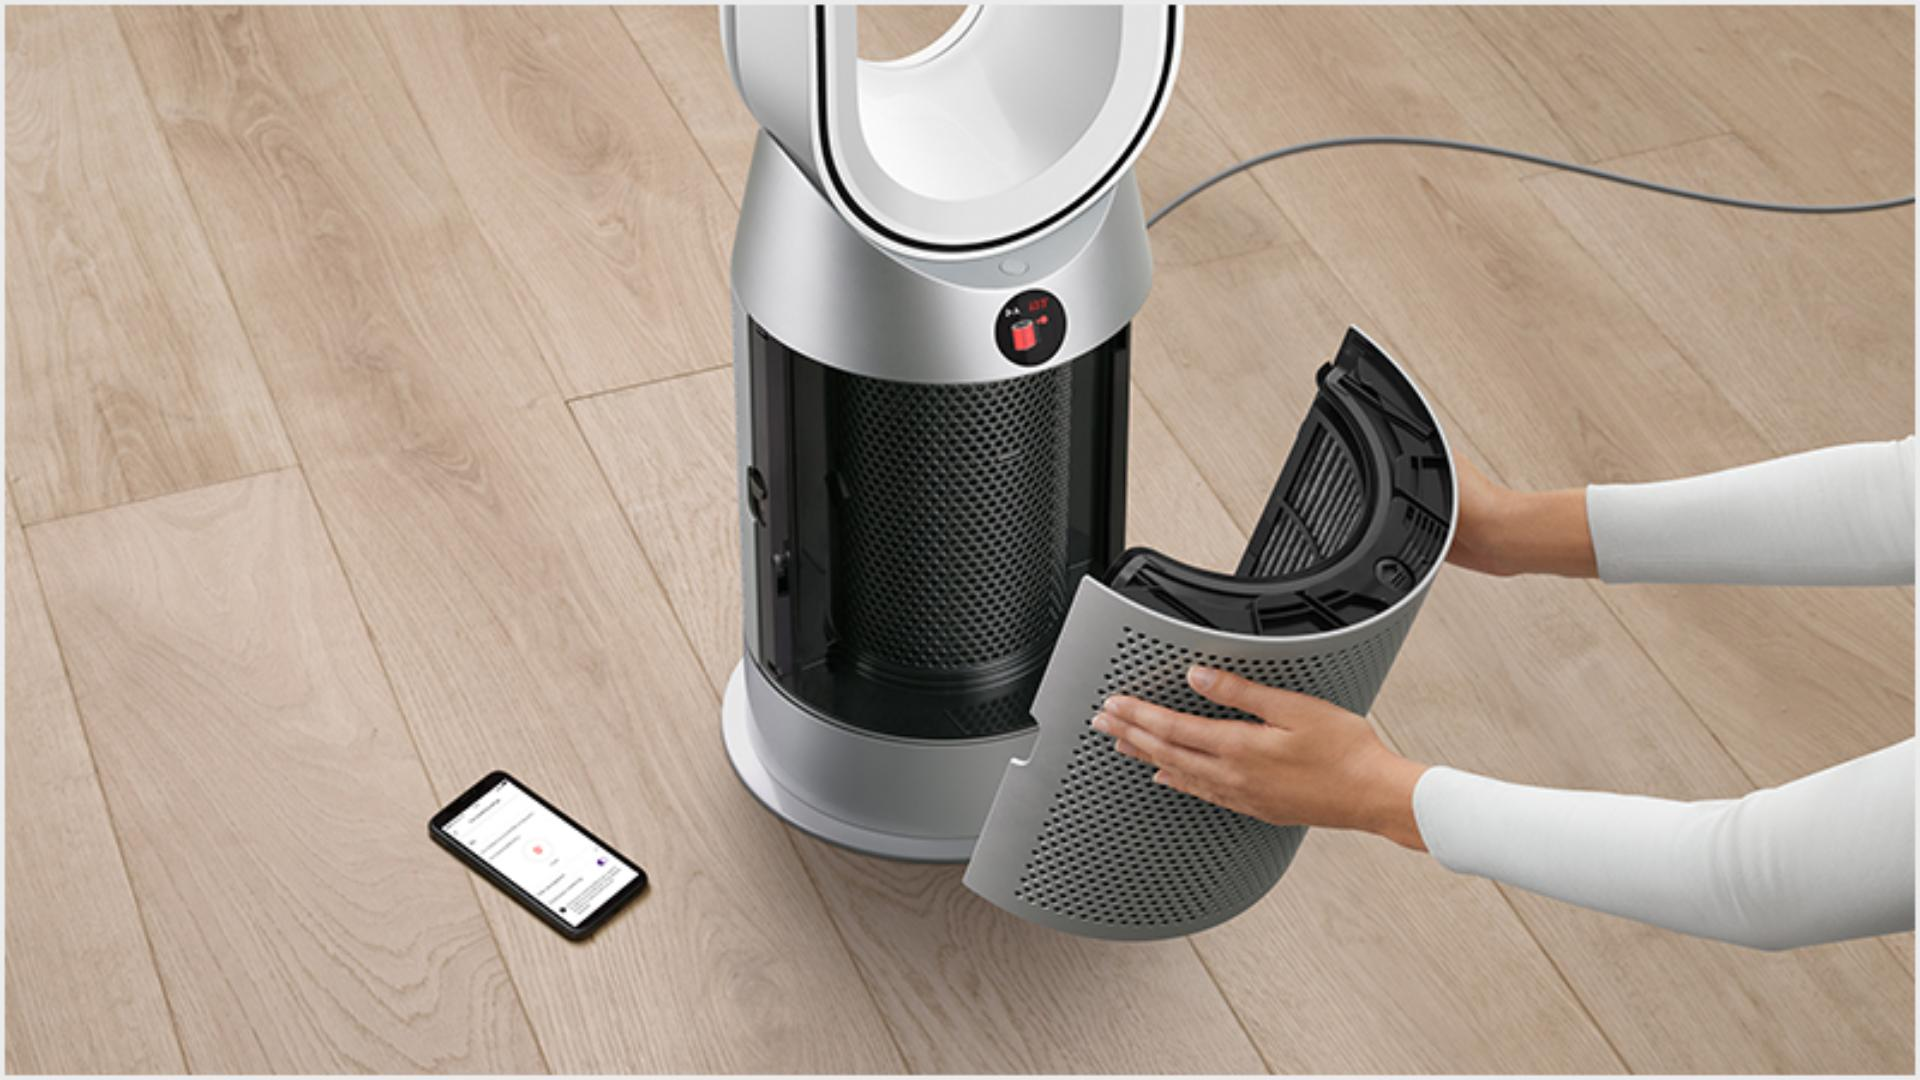 Someone changing a Dyson purifier's filter